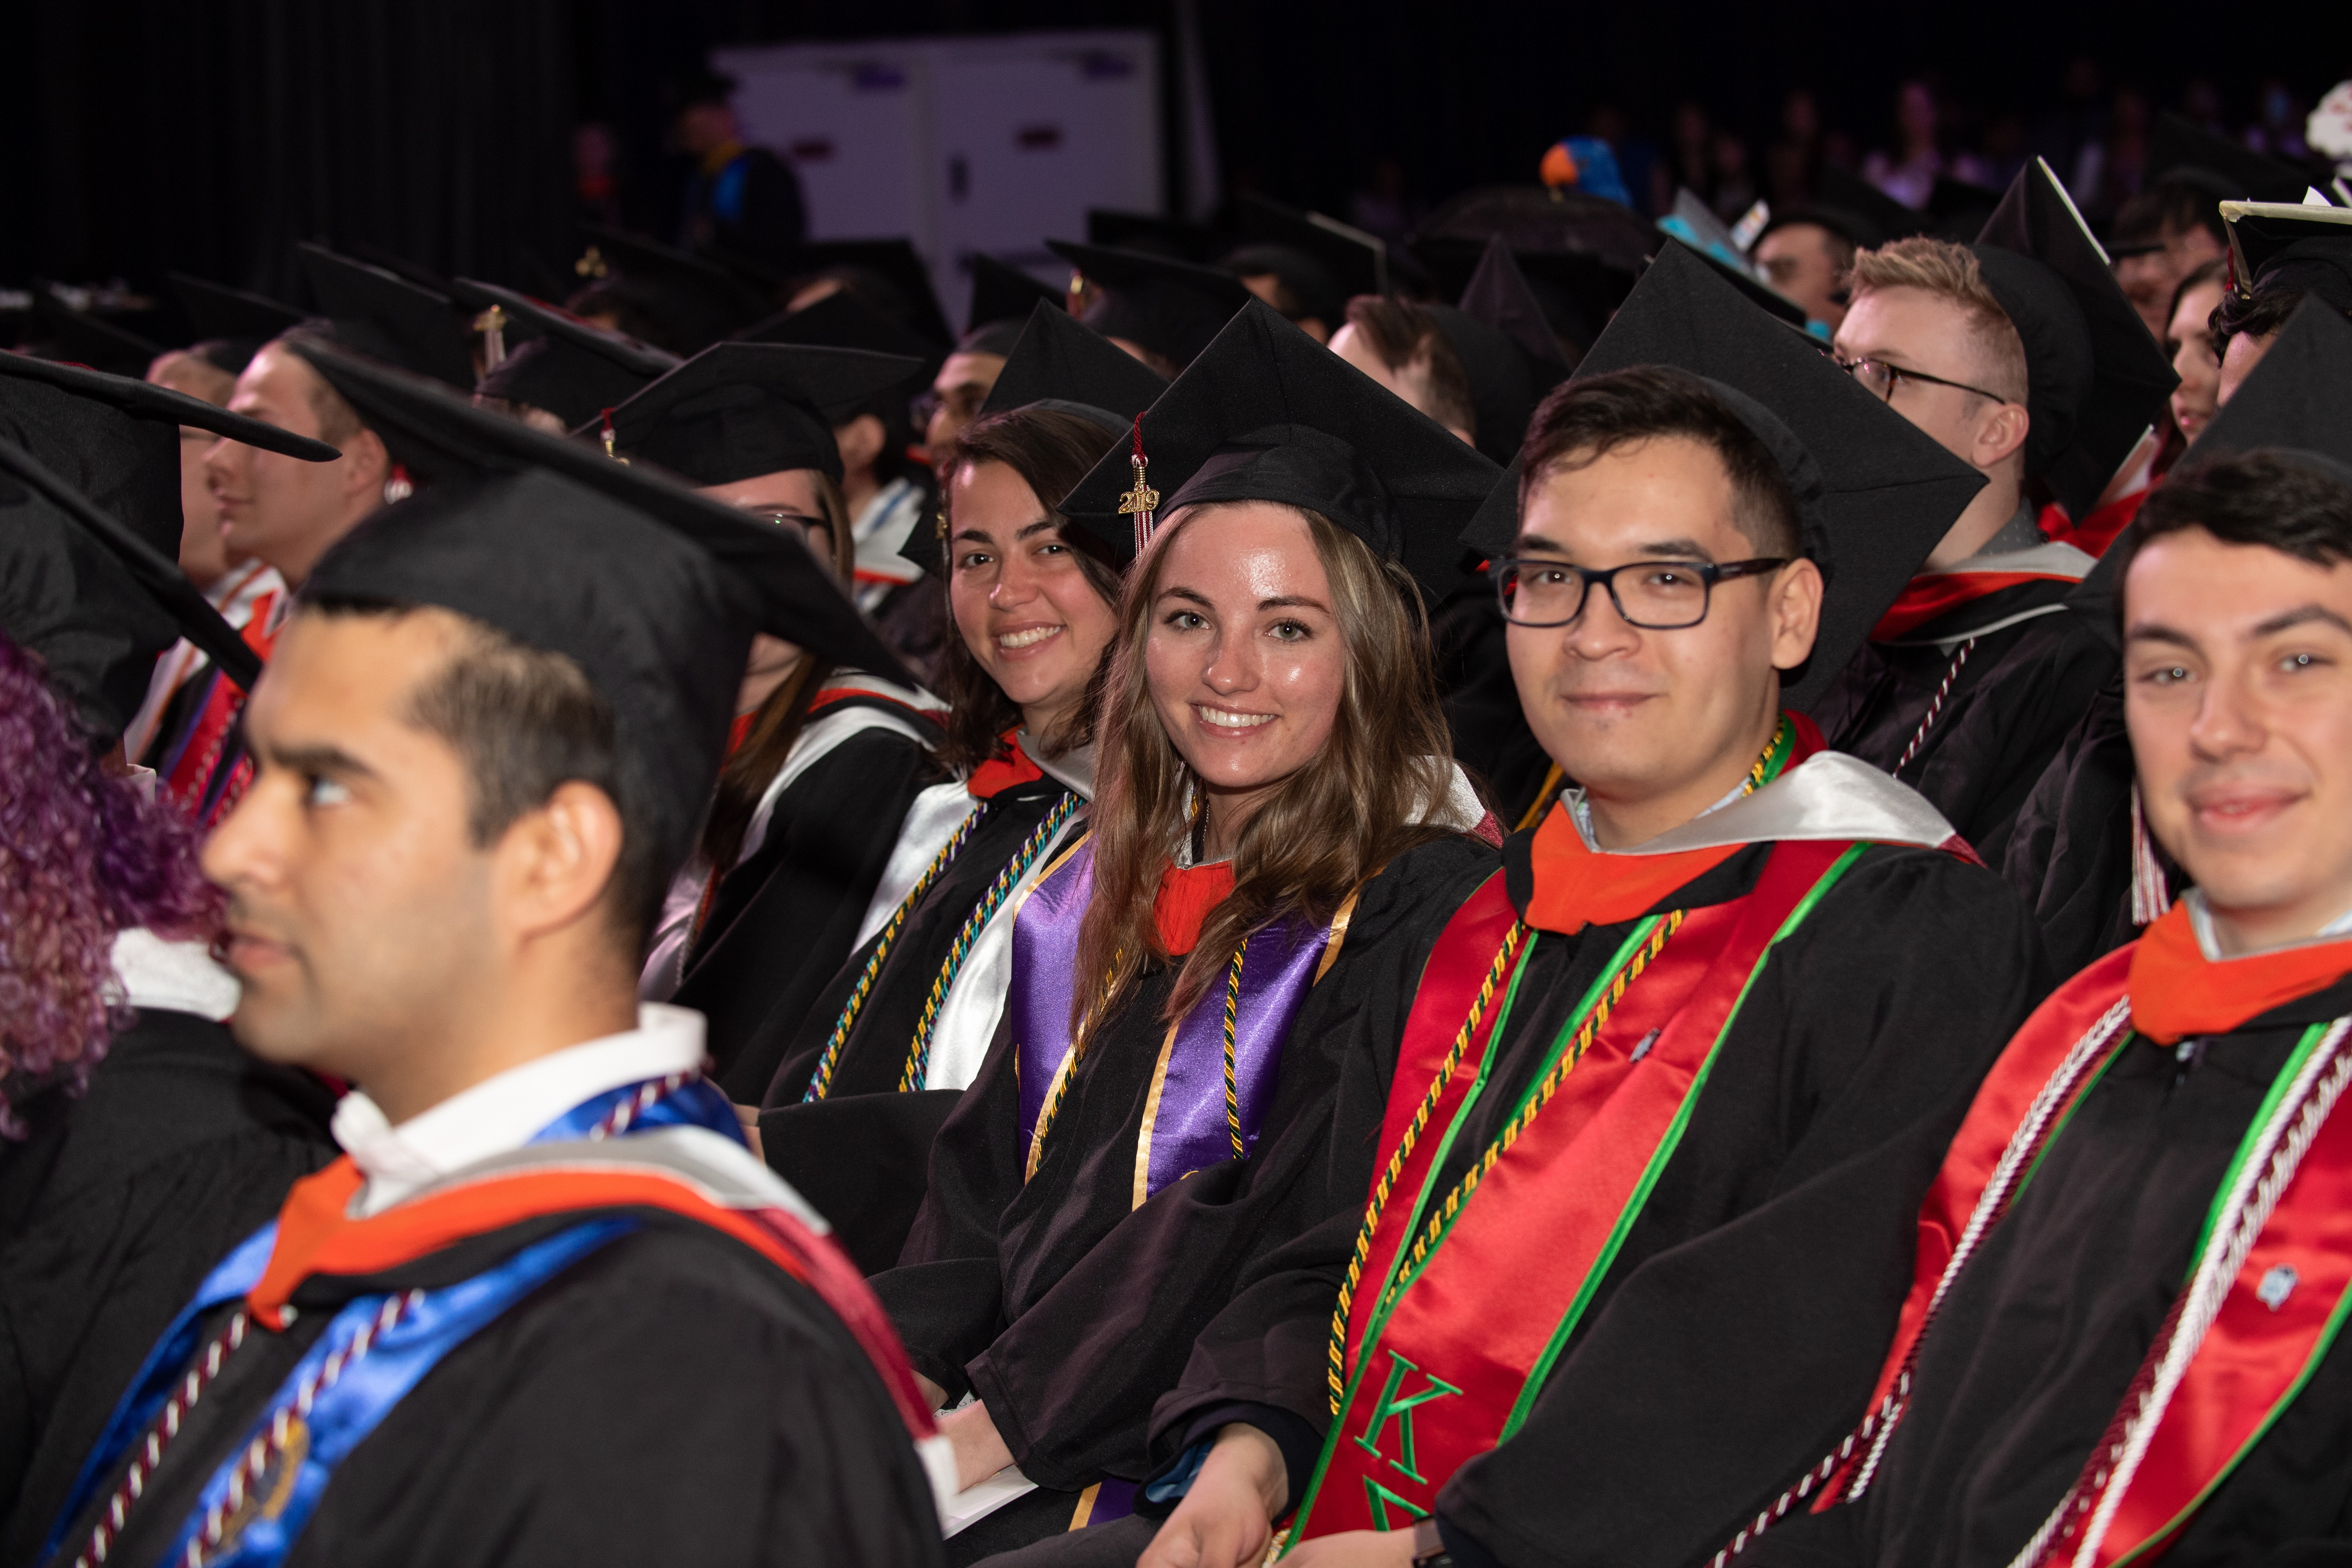 Student Outcomes Report from Stevens Institute of Technology Underscores Benefits of Experiential Learning and Technology-Infused Education